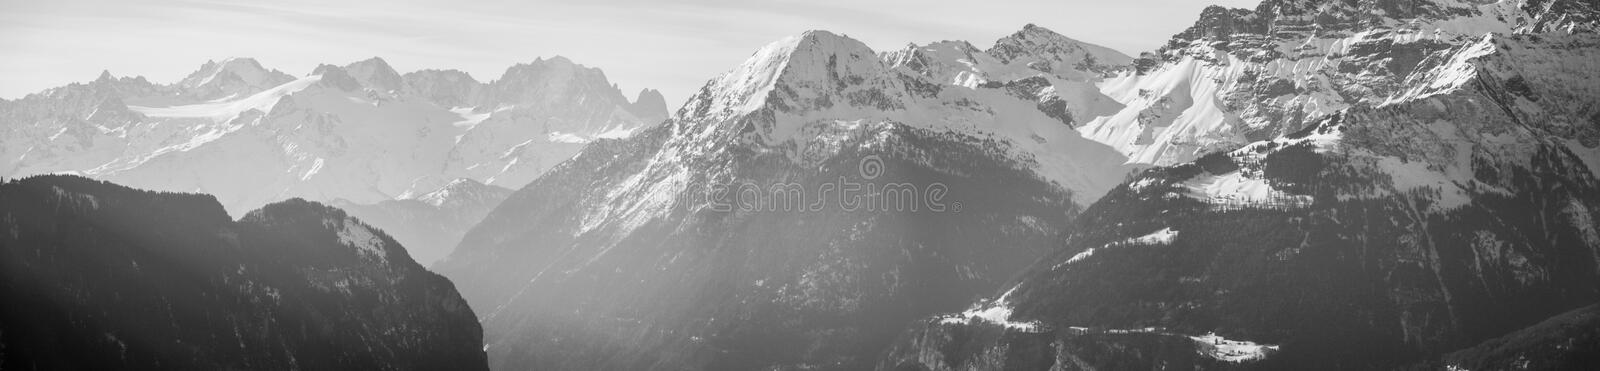 Mountain Range. Alpine scenery with mountain range in winter royalty free stock images